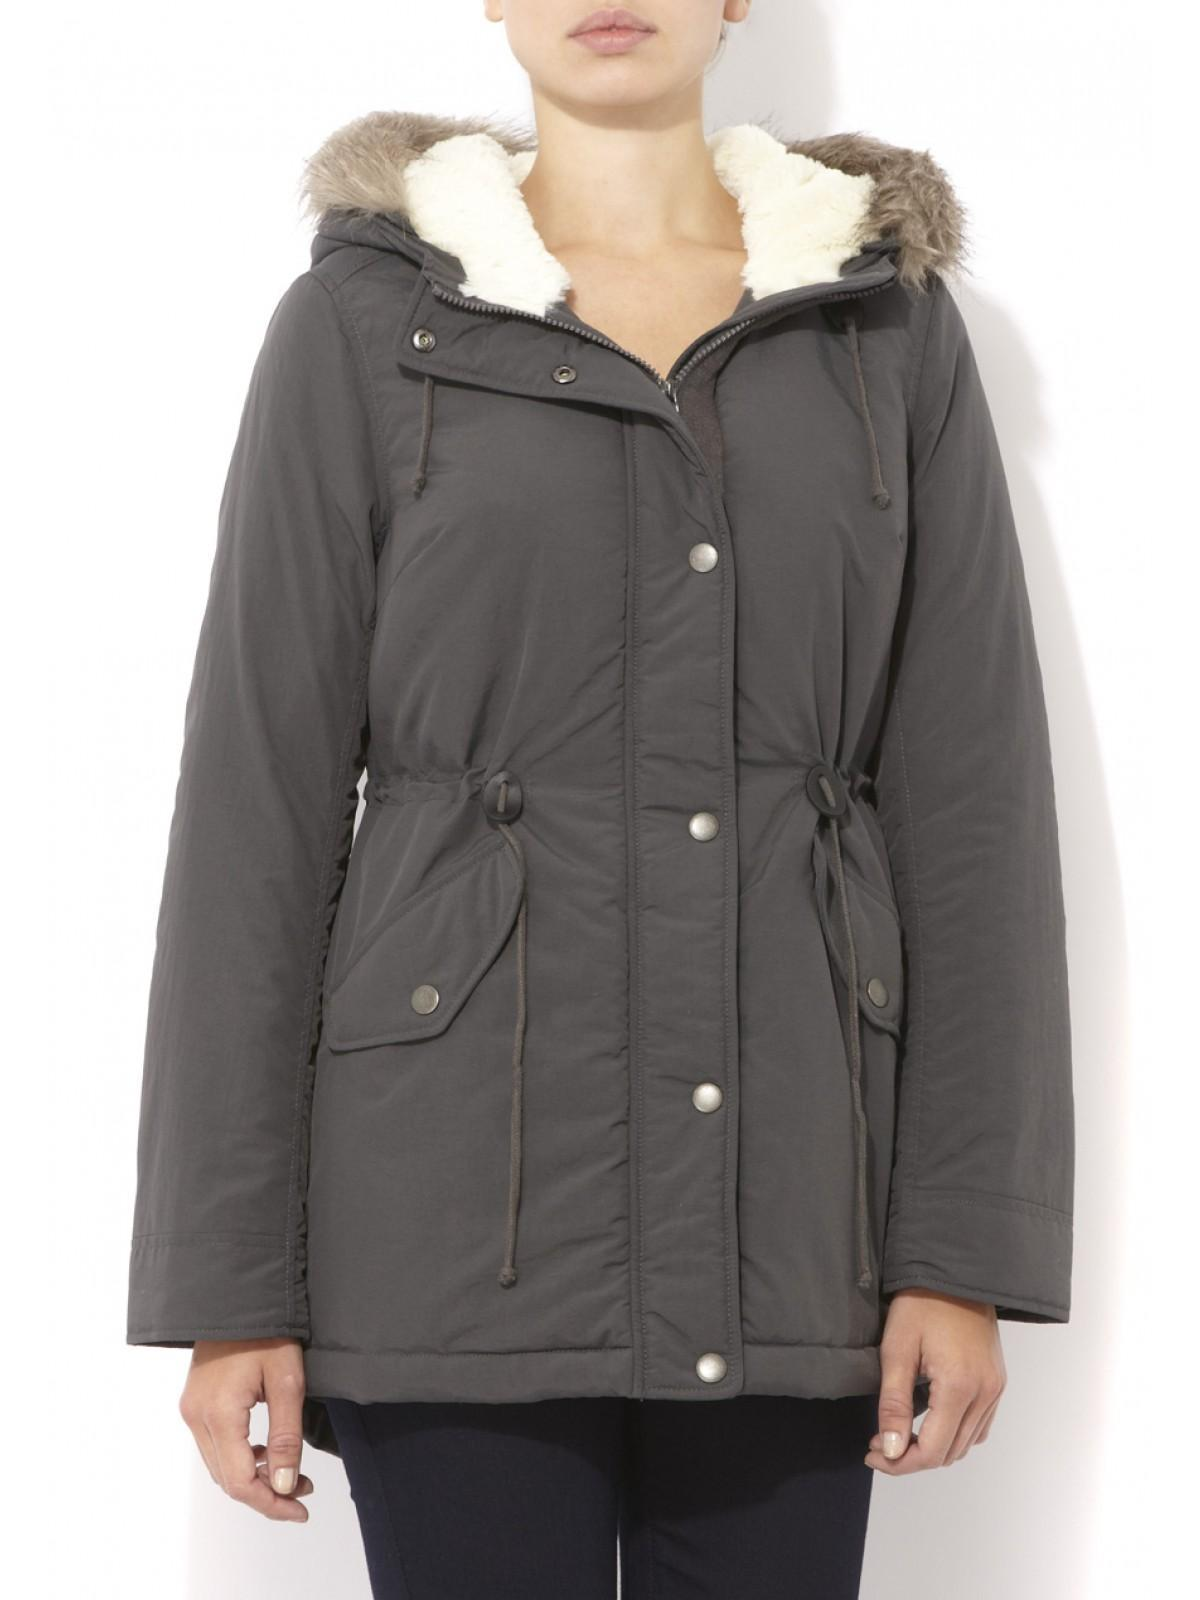 Womens Sherpa Lined Parka | Peacocks